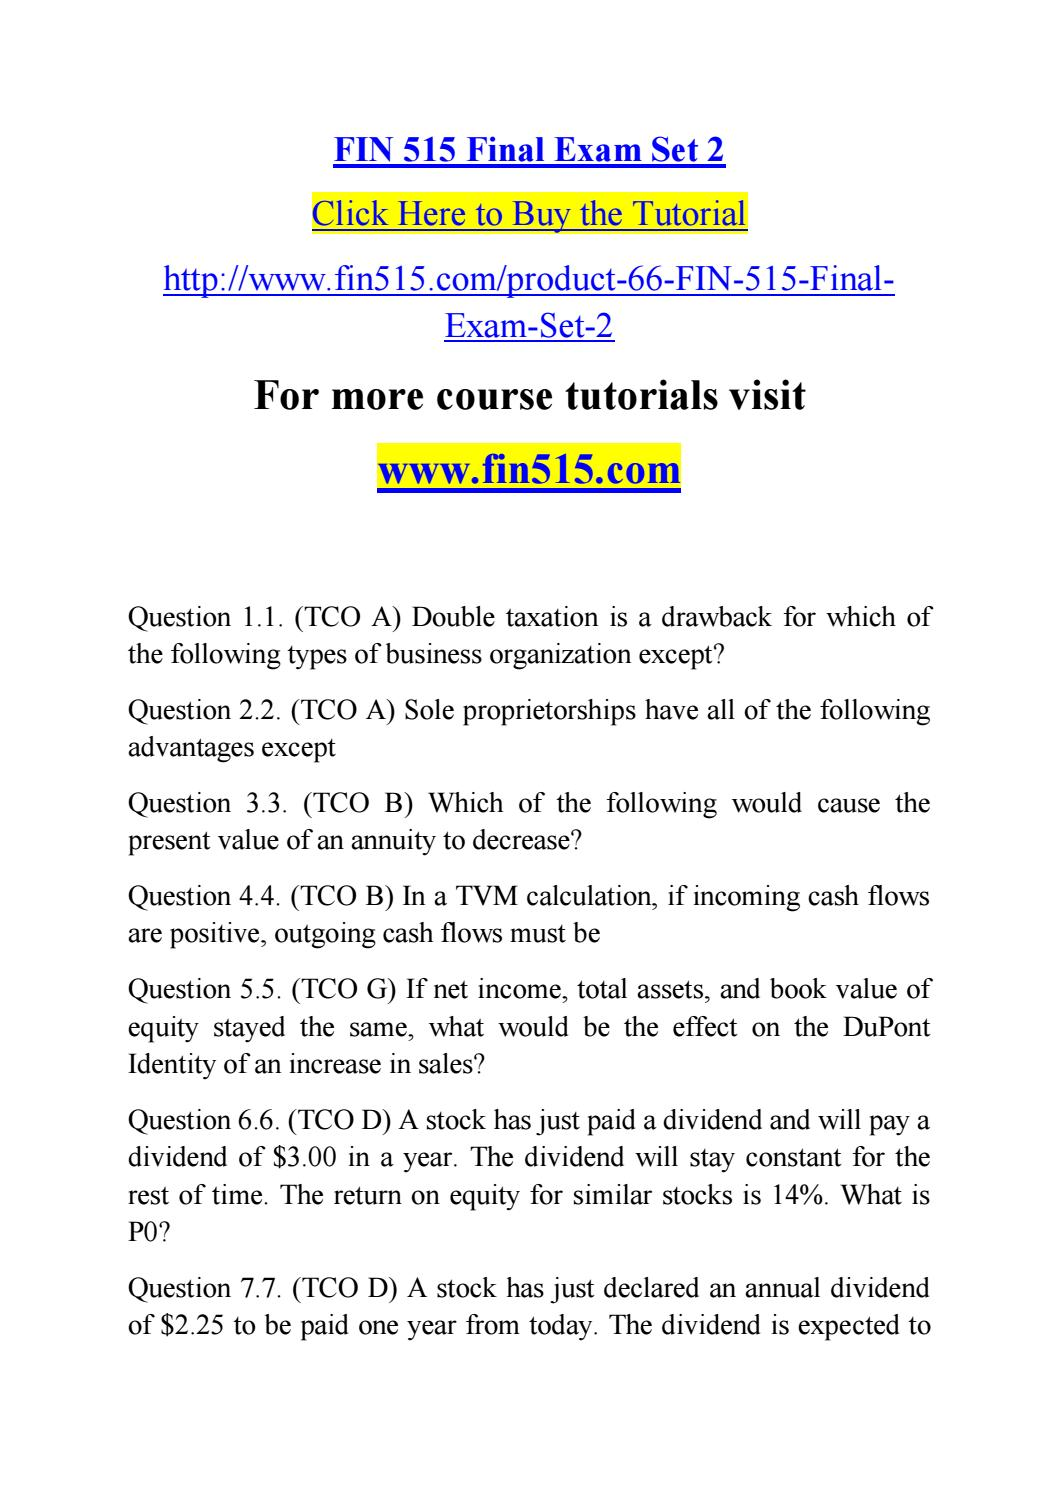 fin 515 final exam Uploading copyrighted material is strictly prohibited refer to our dmca policy for more information this is an online marketplace for best solutions and homework help all the content is provided by third parties and experts of homeworkminutescom.